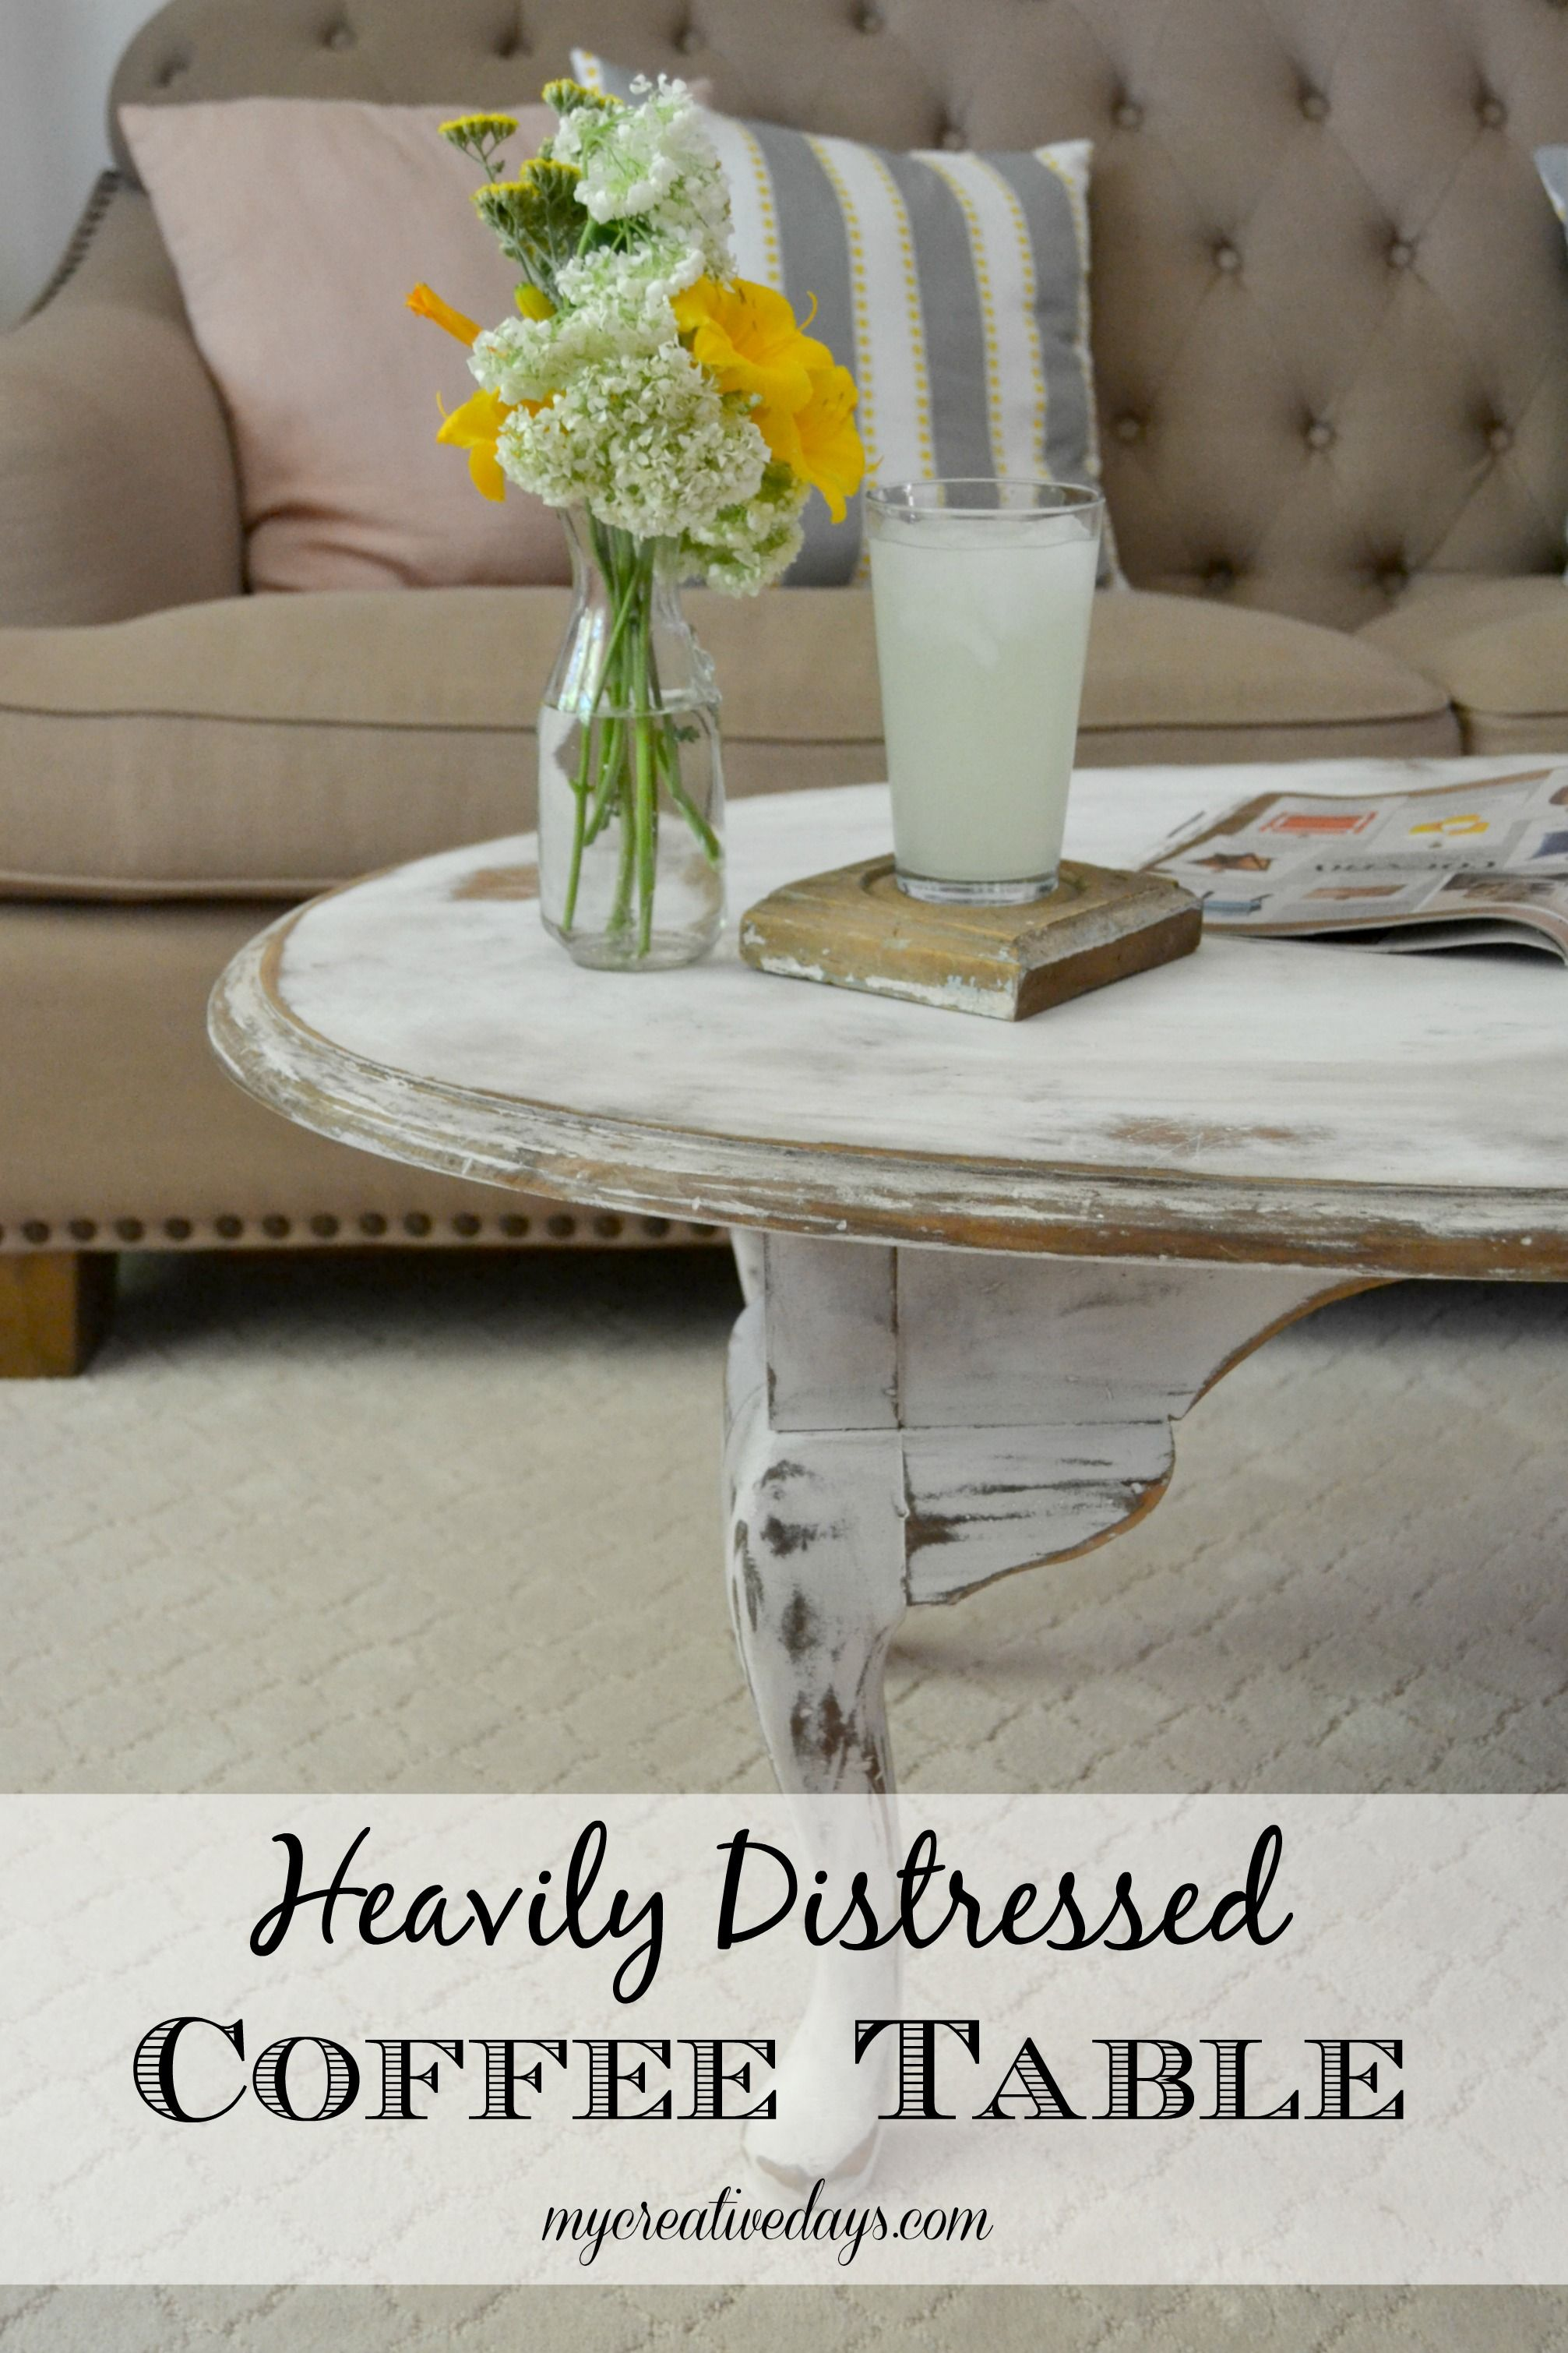 Heavily Distressed Coffee Table